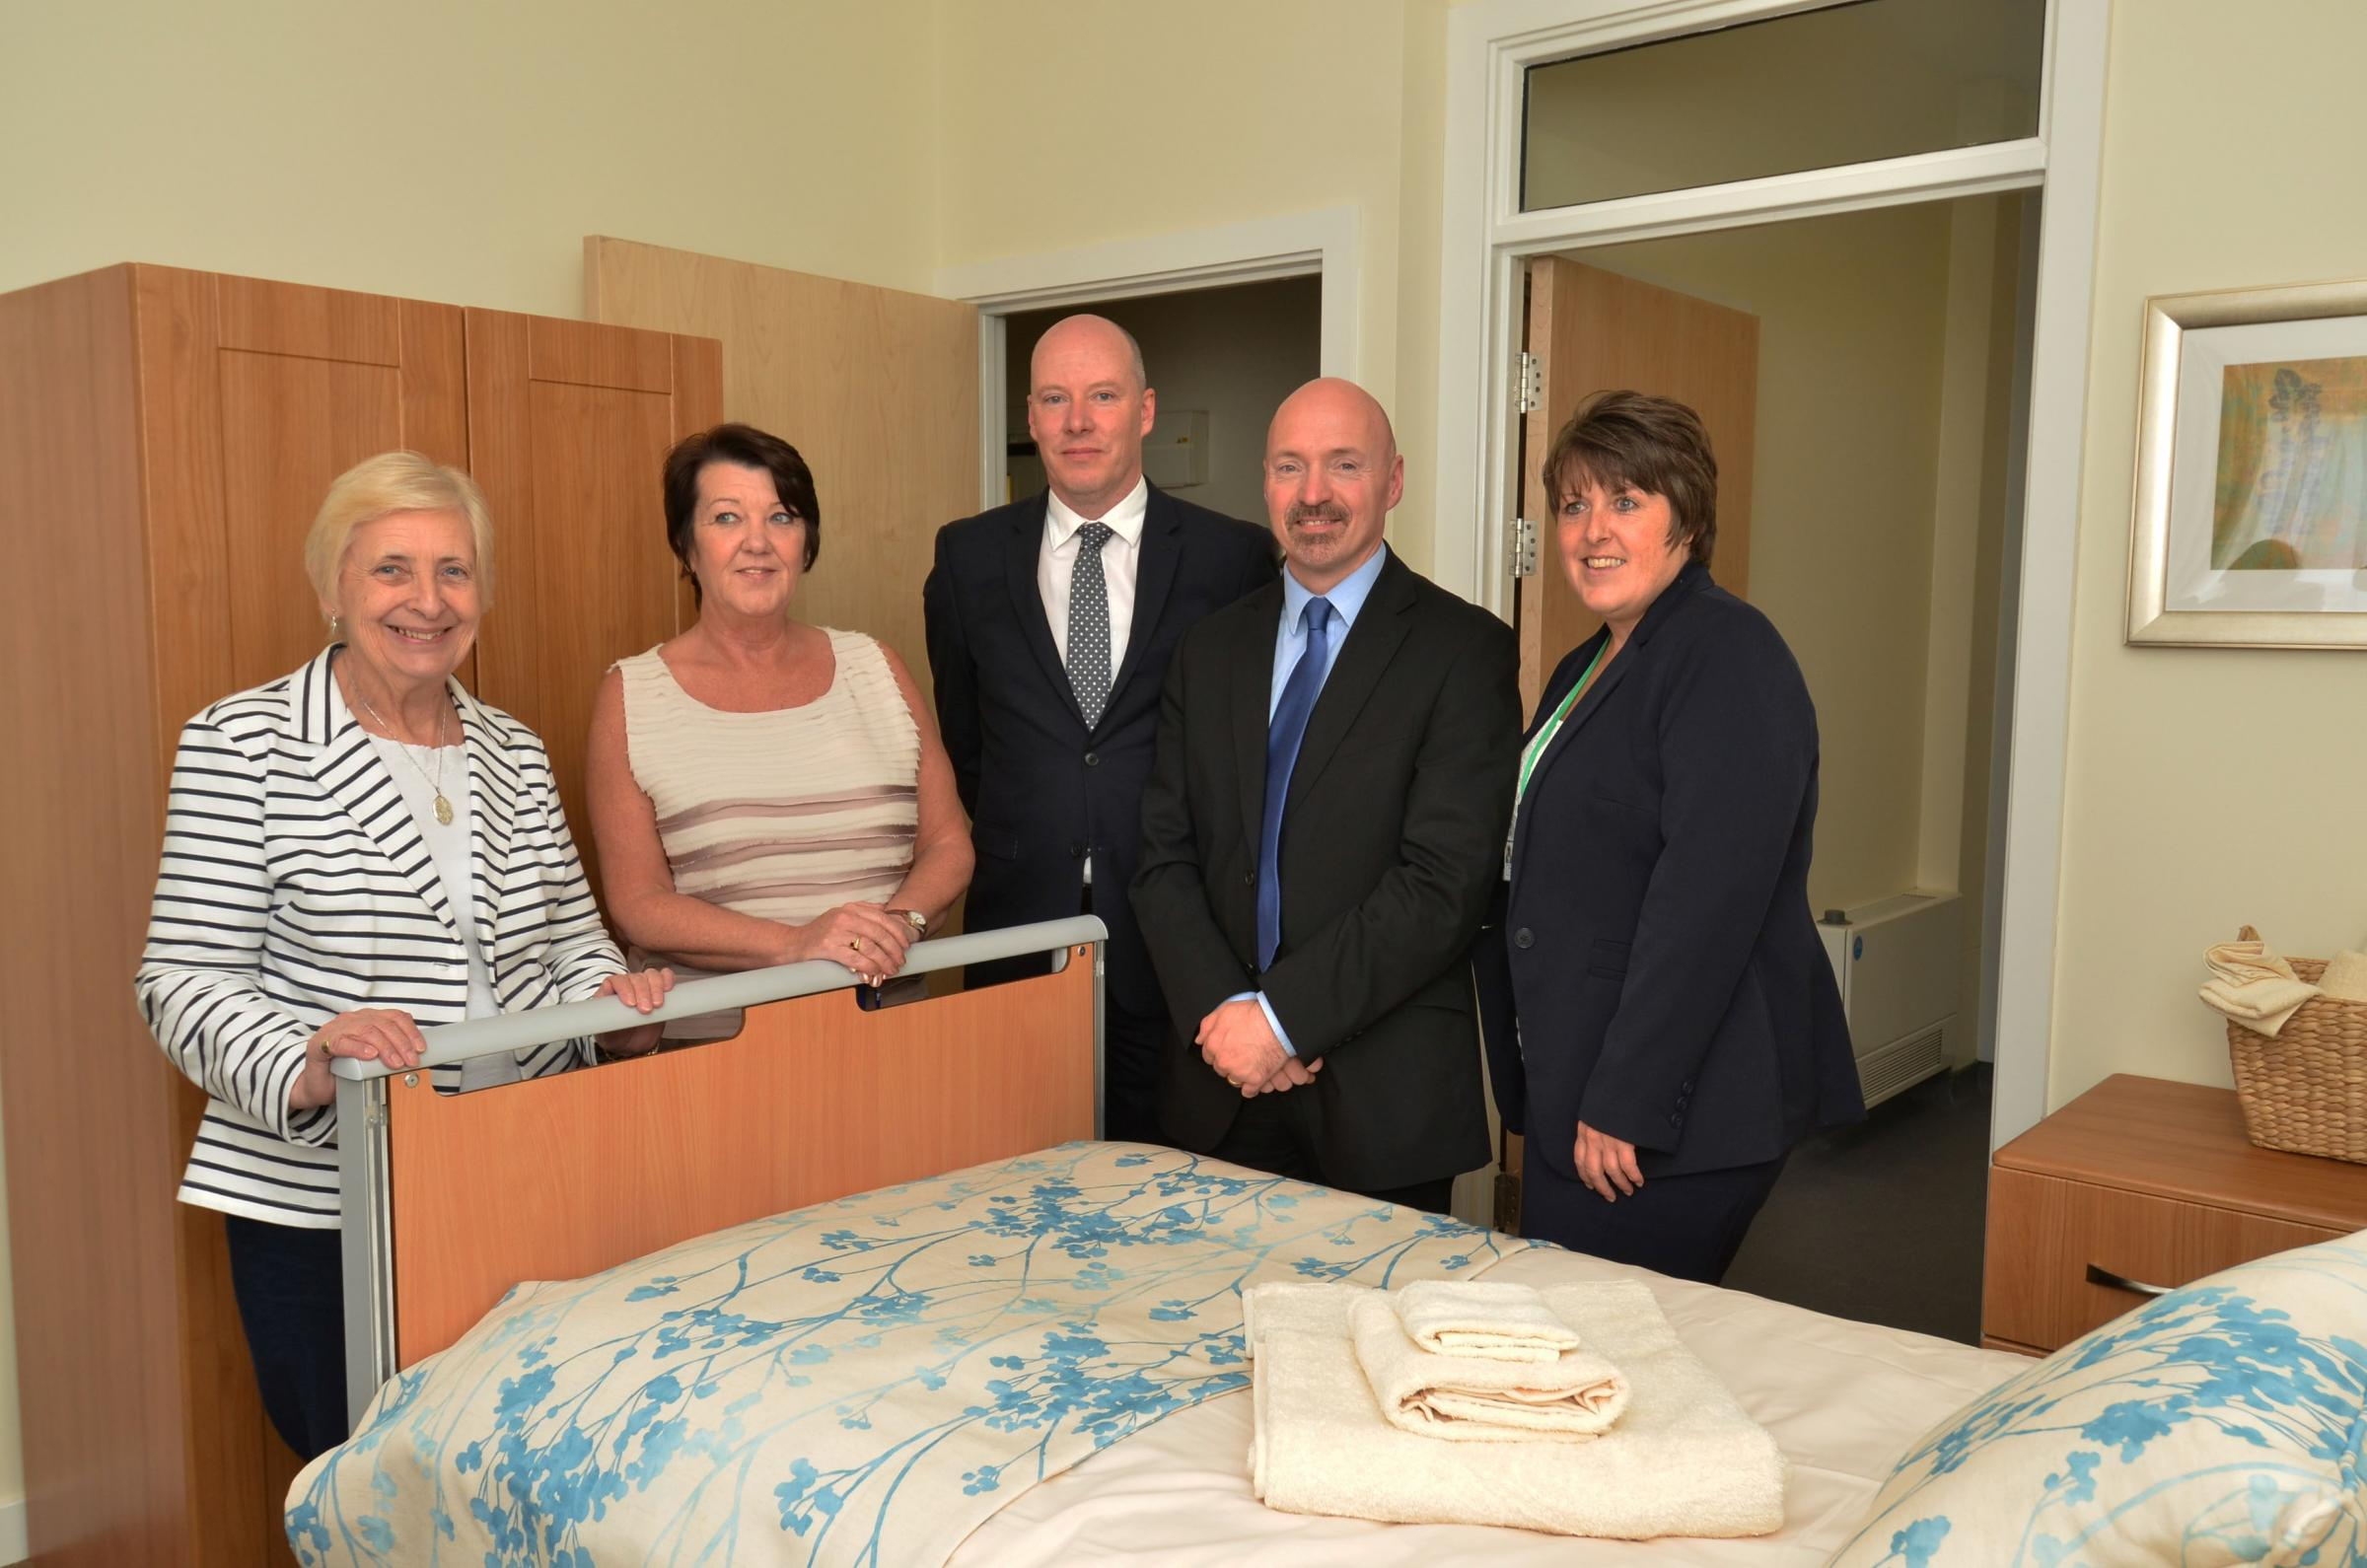 New flats aim to maximise independence